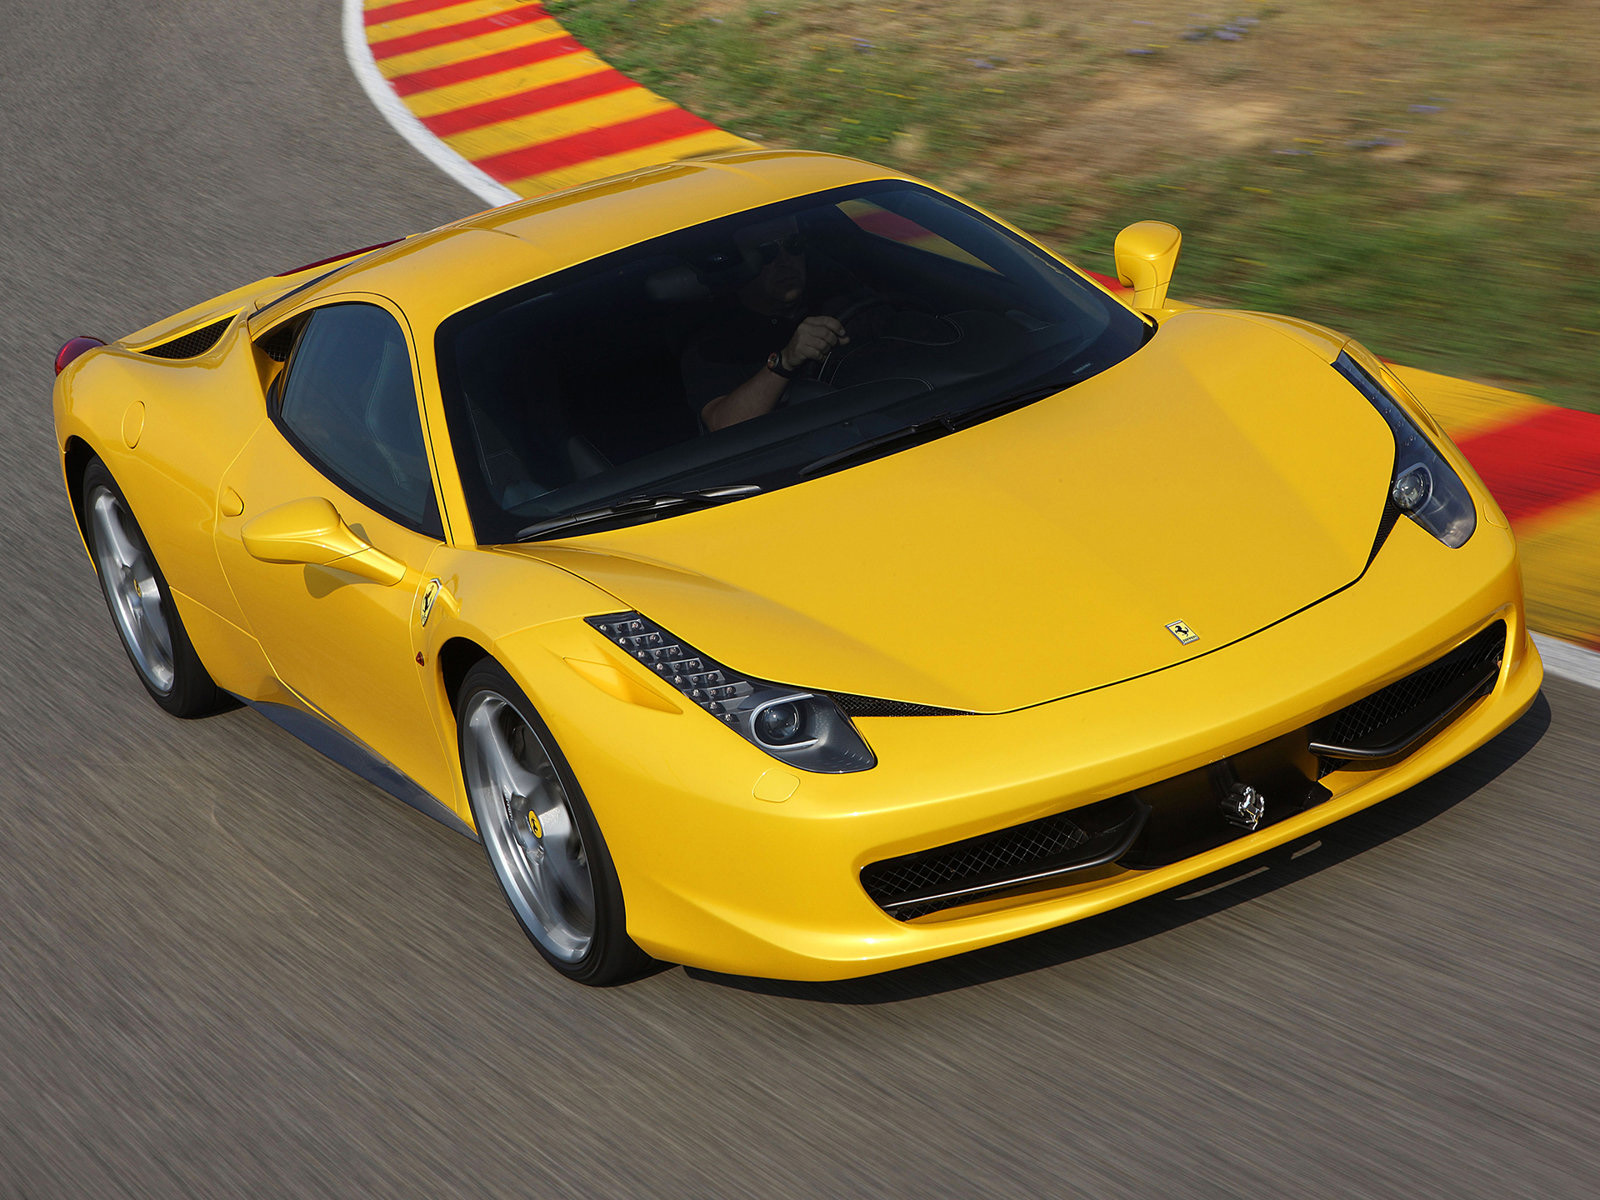 Club 4 Buzz Yellow Ferrari